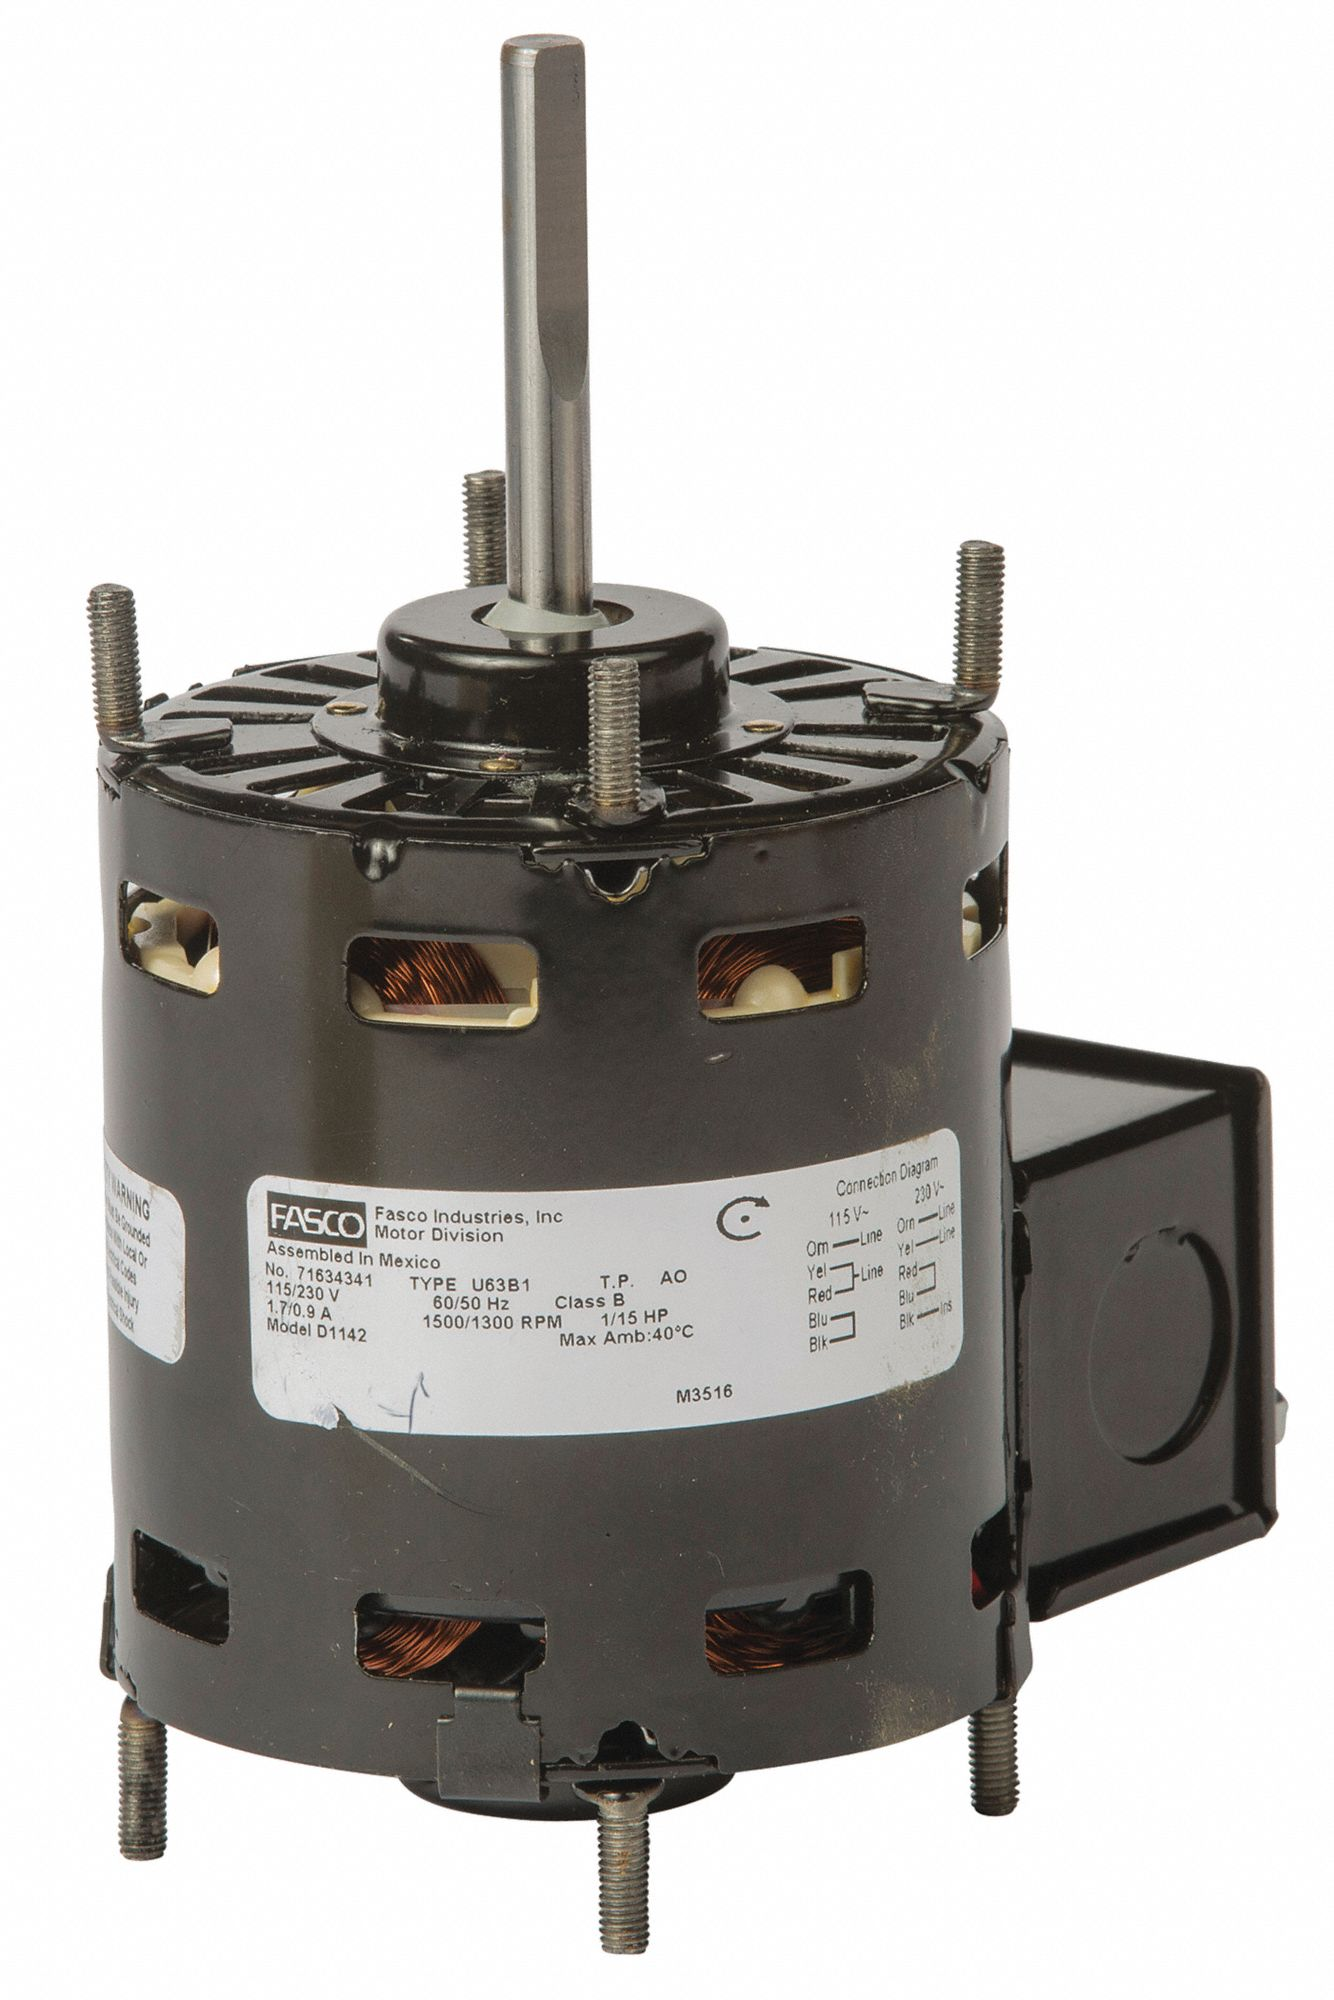 FASCO Shaded Pole Condenser Fan Motor, 1/15 HP, 1401-1500 RPM Range on house thermostat wiring diagrams, 3 phase motor winding diagrams, single phase 115v motor diagrams, electric trailer brake wiring diagrams, 2 hp marathon electric motors wiring diagrams, capacitor start motor diagrams, single phase capacitor motor diagrams, 115 230 motor voltage change, general motors parts diagrams, scosche wiring harness diagrams,